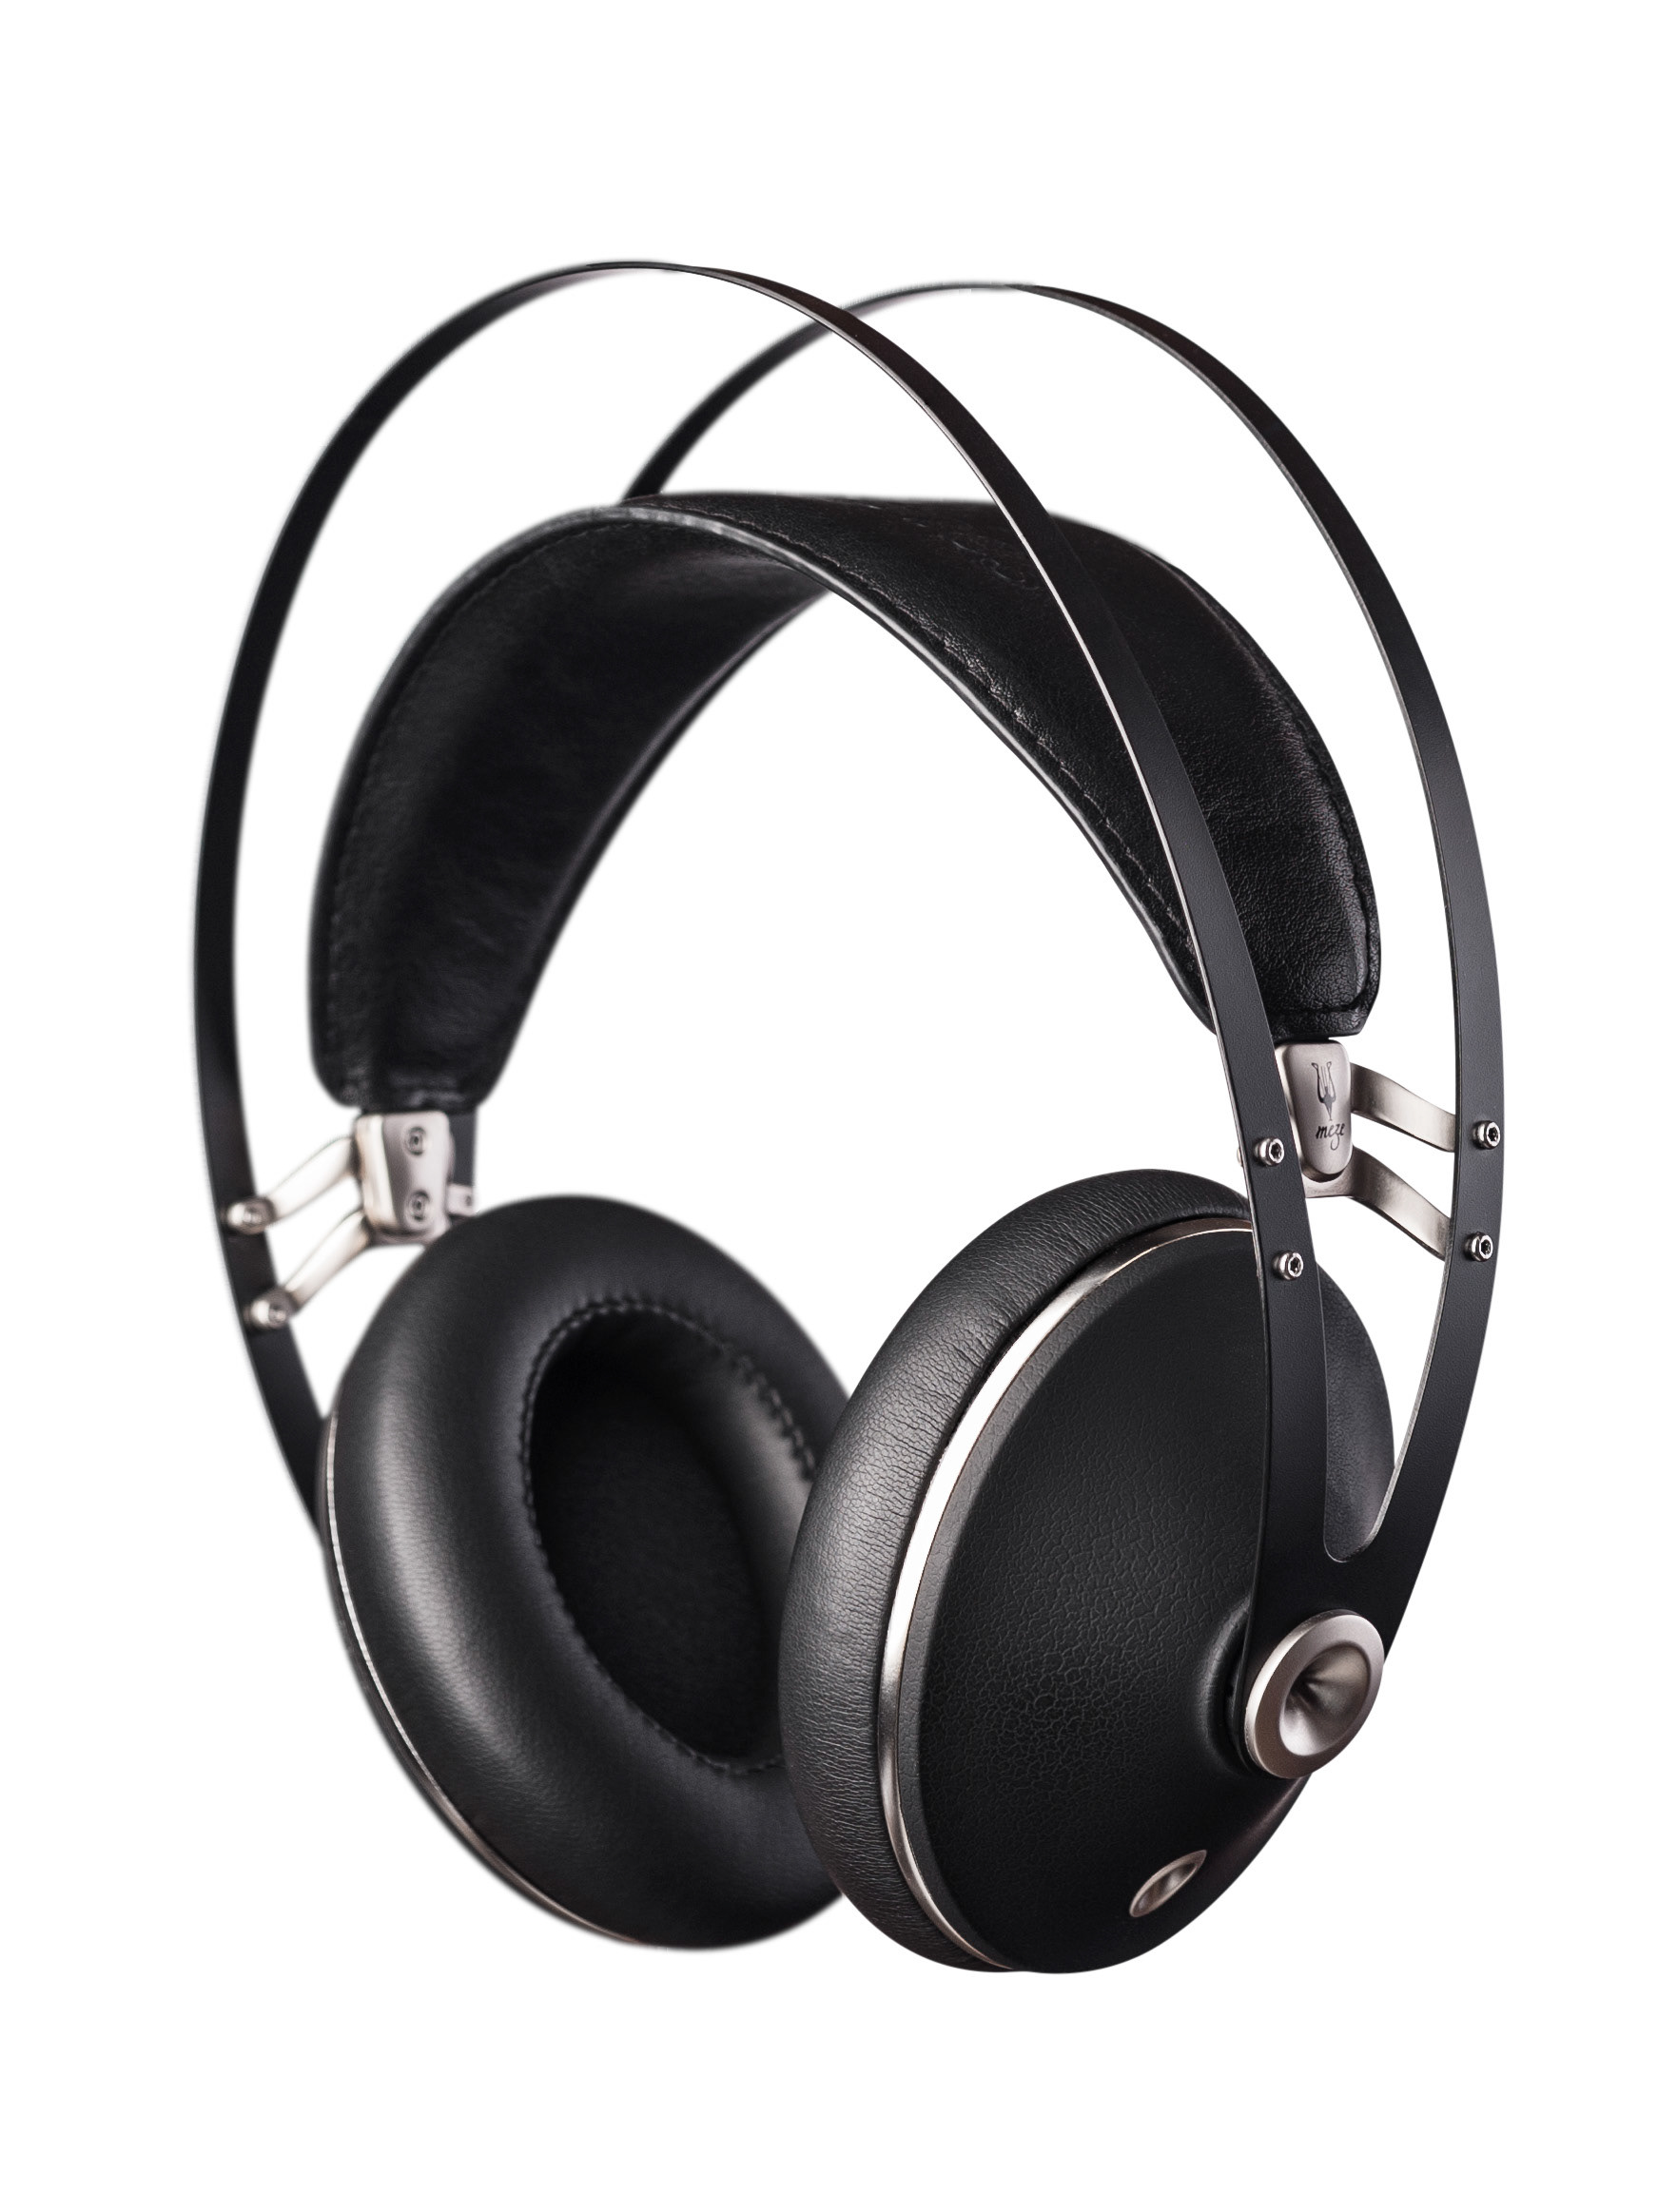 Meze 99 Neo An All Black Variation Of The Original Promising To Deliver Same Audio Quality As Classics At A More Affordable Price Point